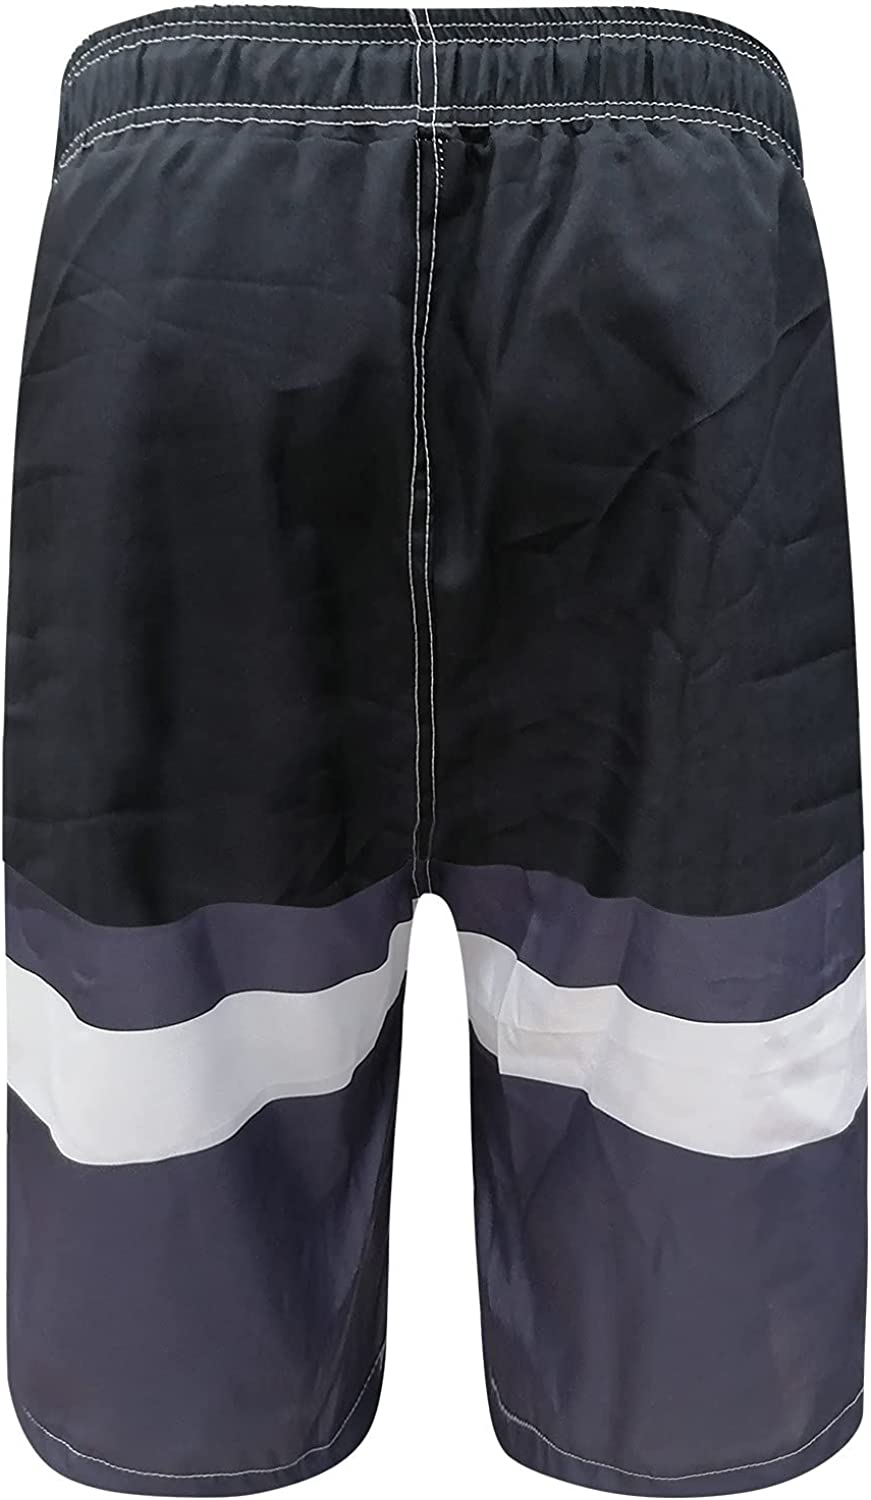 Huangse Men's Swim Trunks Quick Dry Beach Shorts with Mesh Lining Swimwear Bathing Suits with Mesh Lining